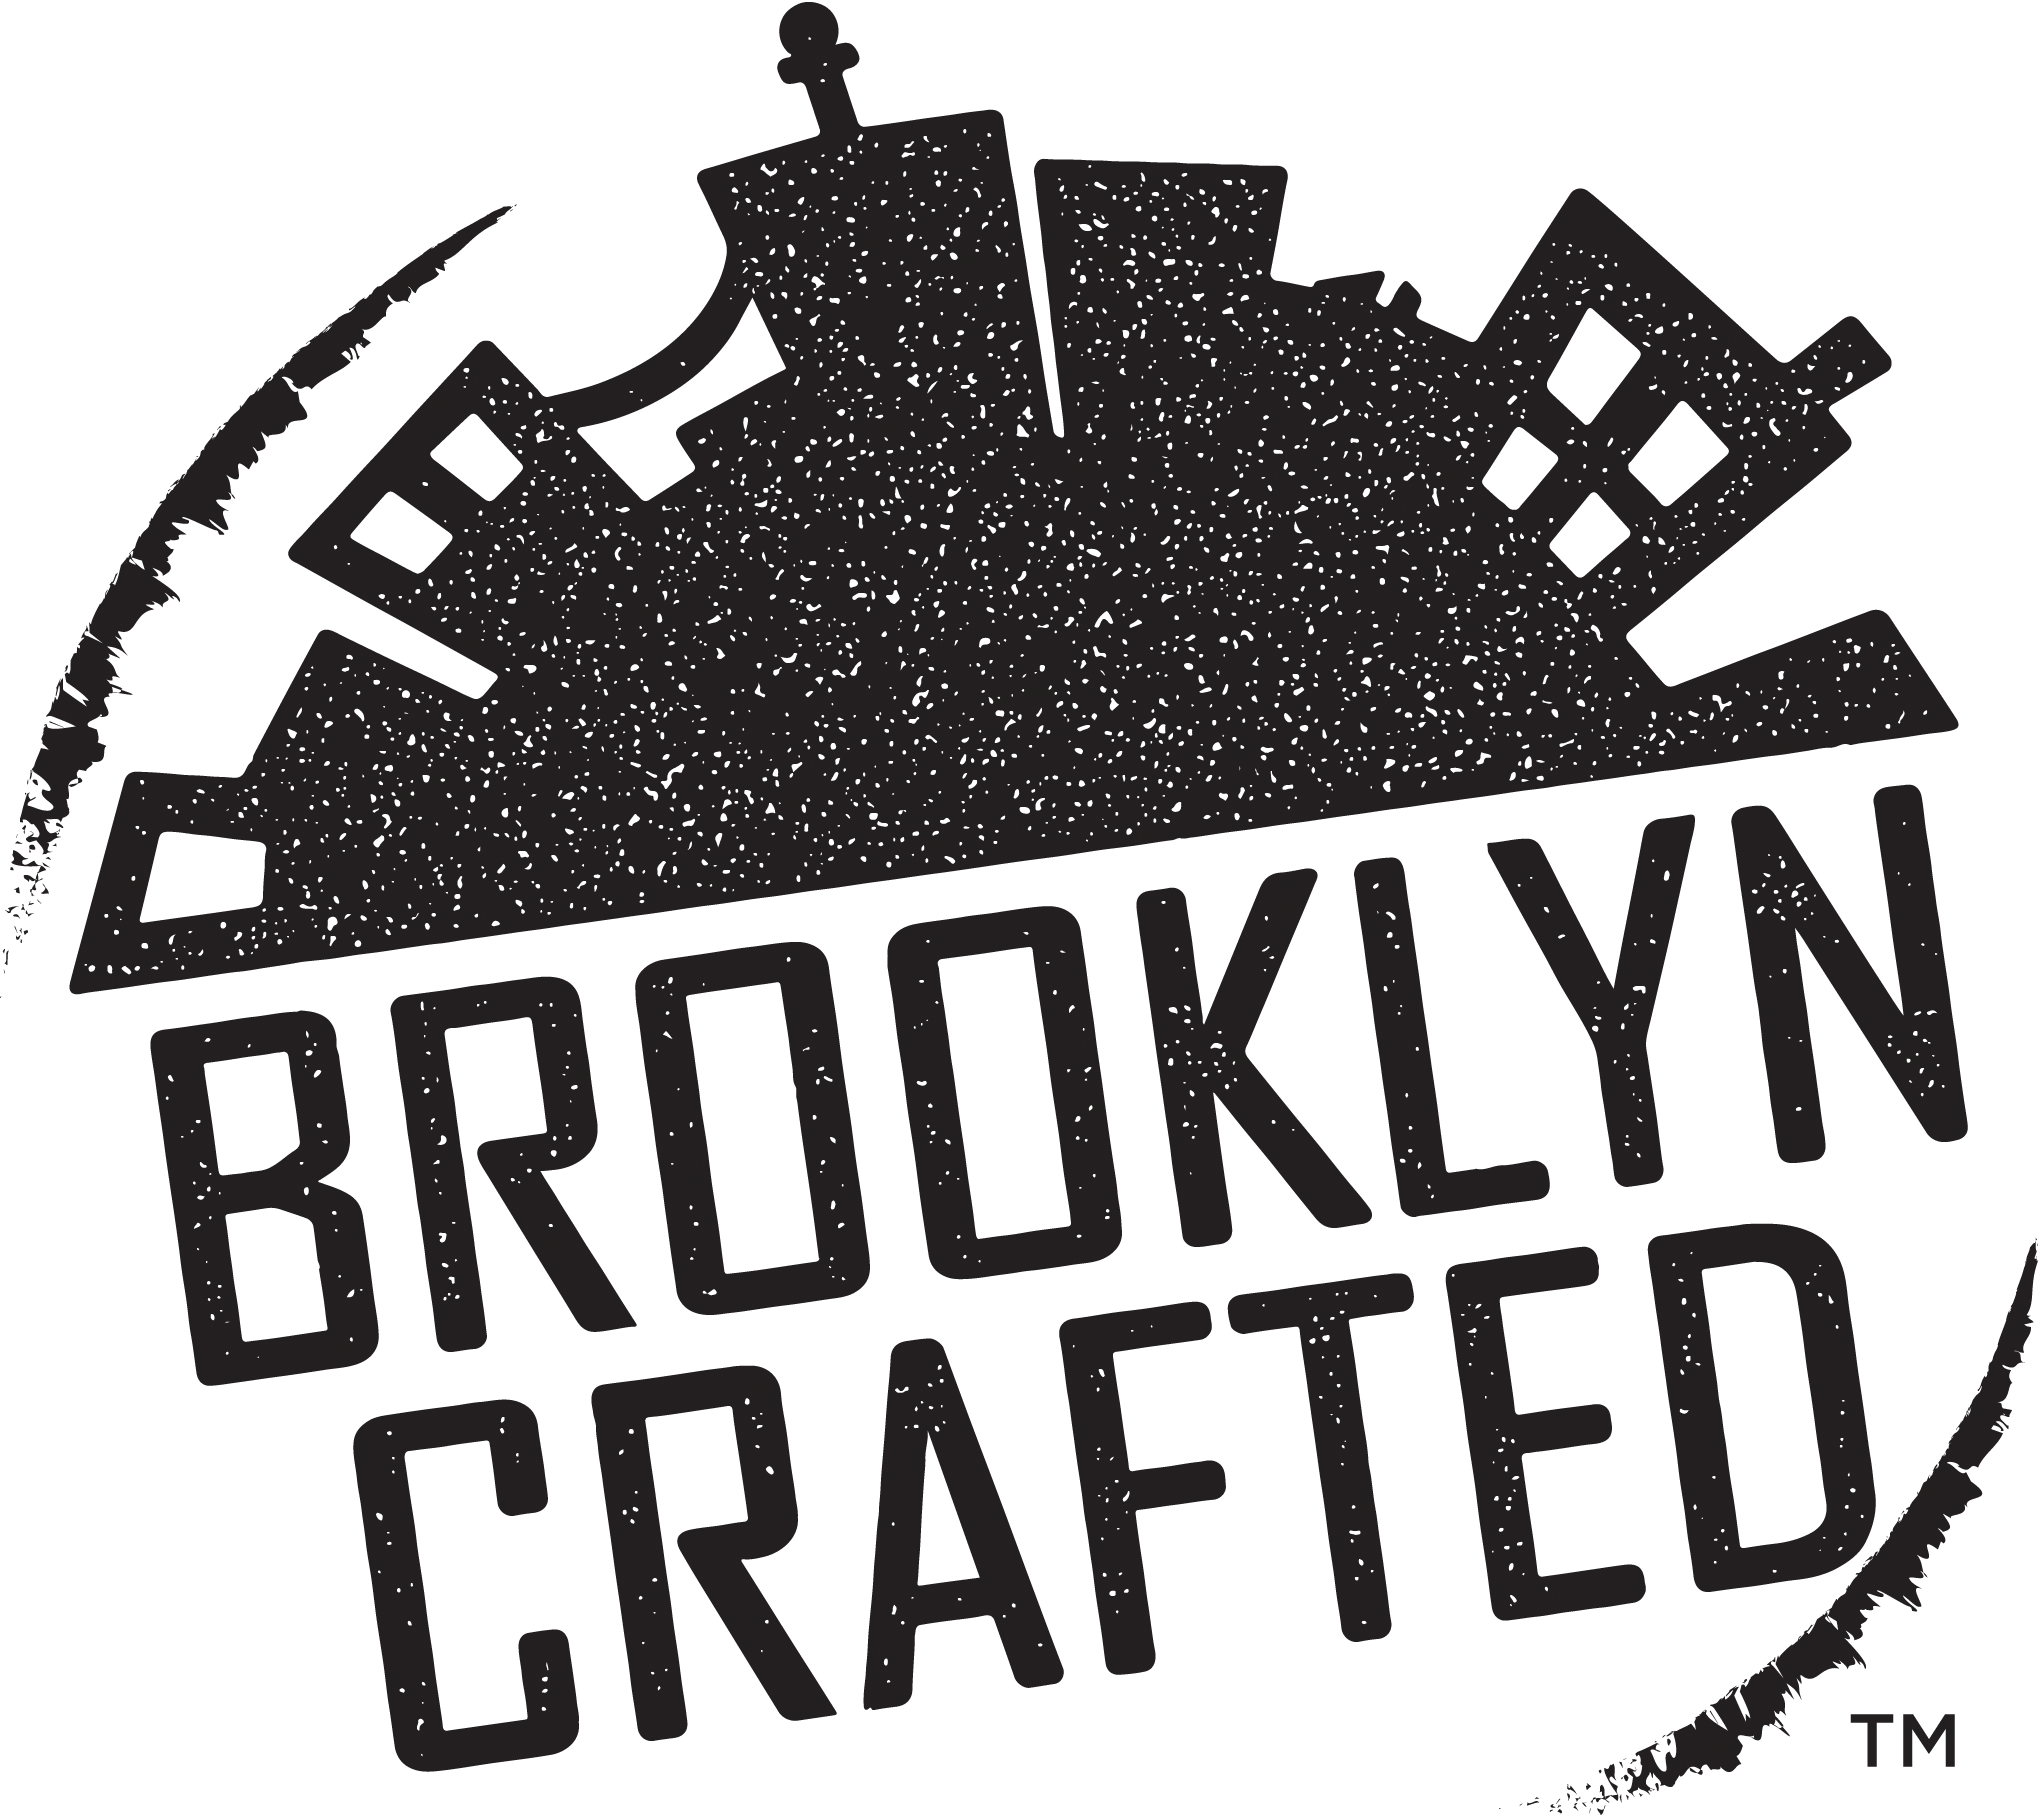 Brooklyn Crafted.png